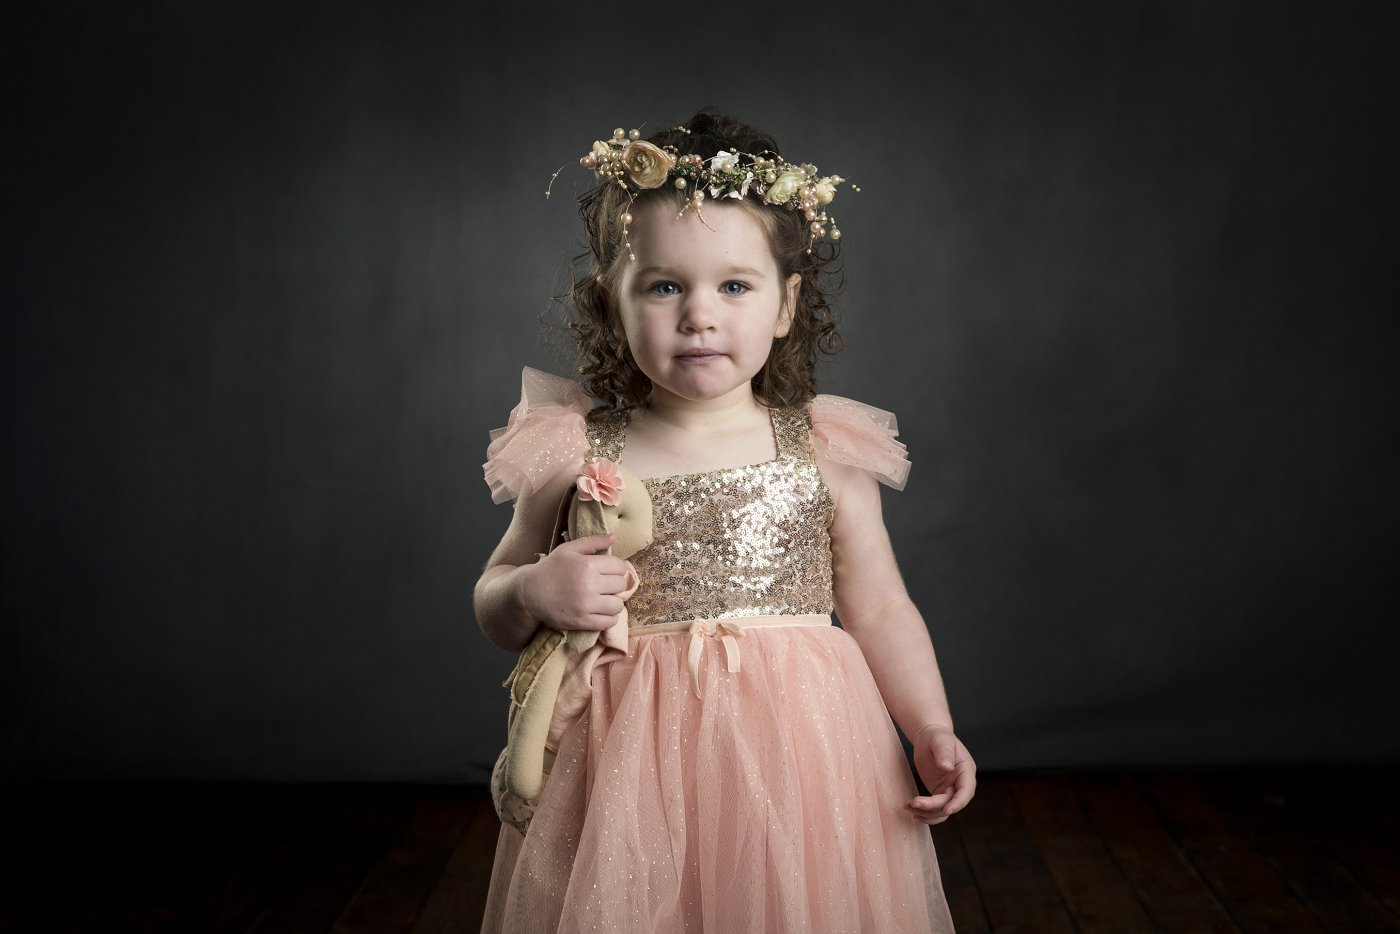 """Brooke Cohen - """"Amazing photos from a very talented photography. The staff were so friendly & approachable. Even my 2 yr old who can be a little shy at first with strangers warmed to the photographer immediately. The pricing structure is defiently a reflection of both the photographers talent & the quality of the product. You won't be disappointed."""""""